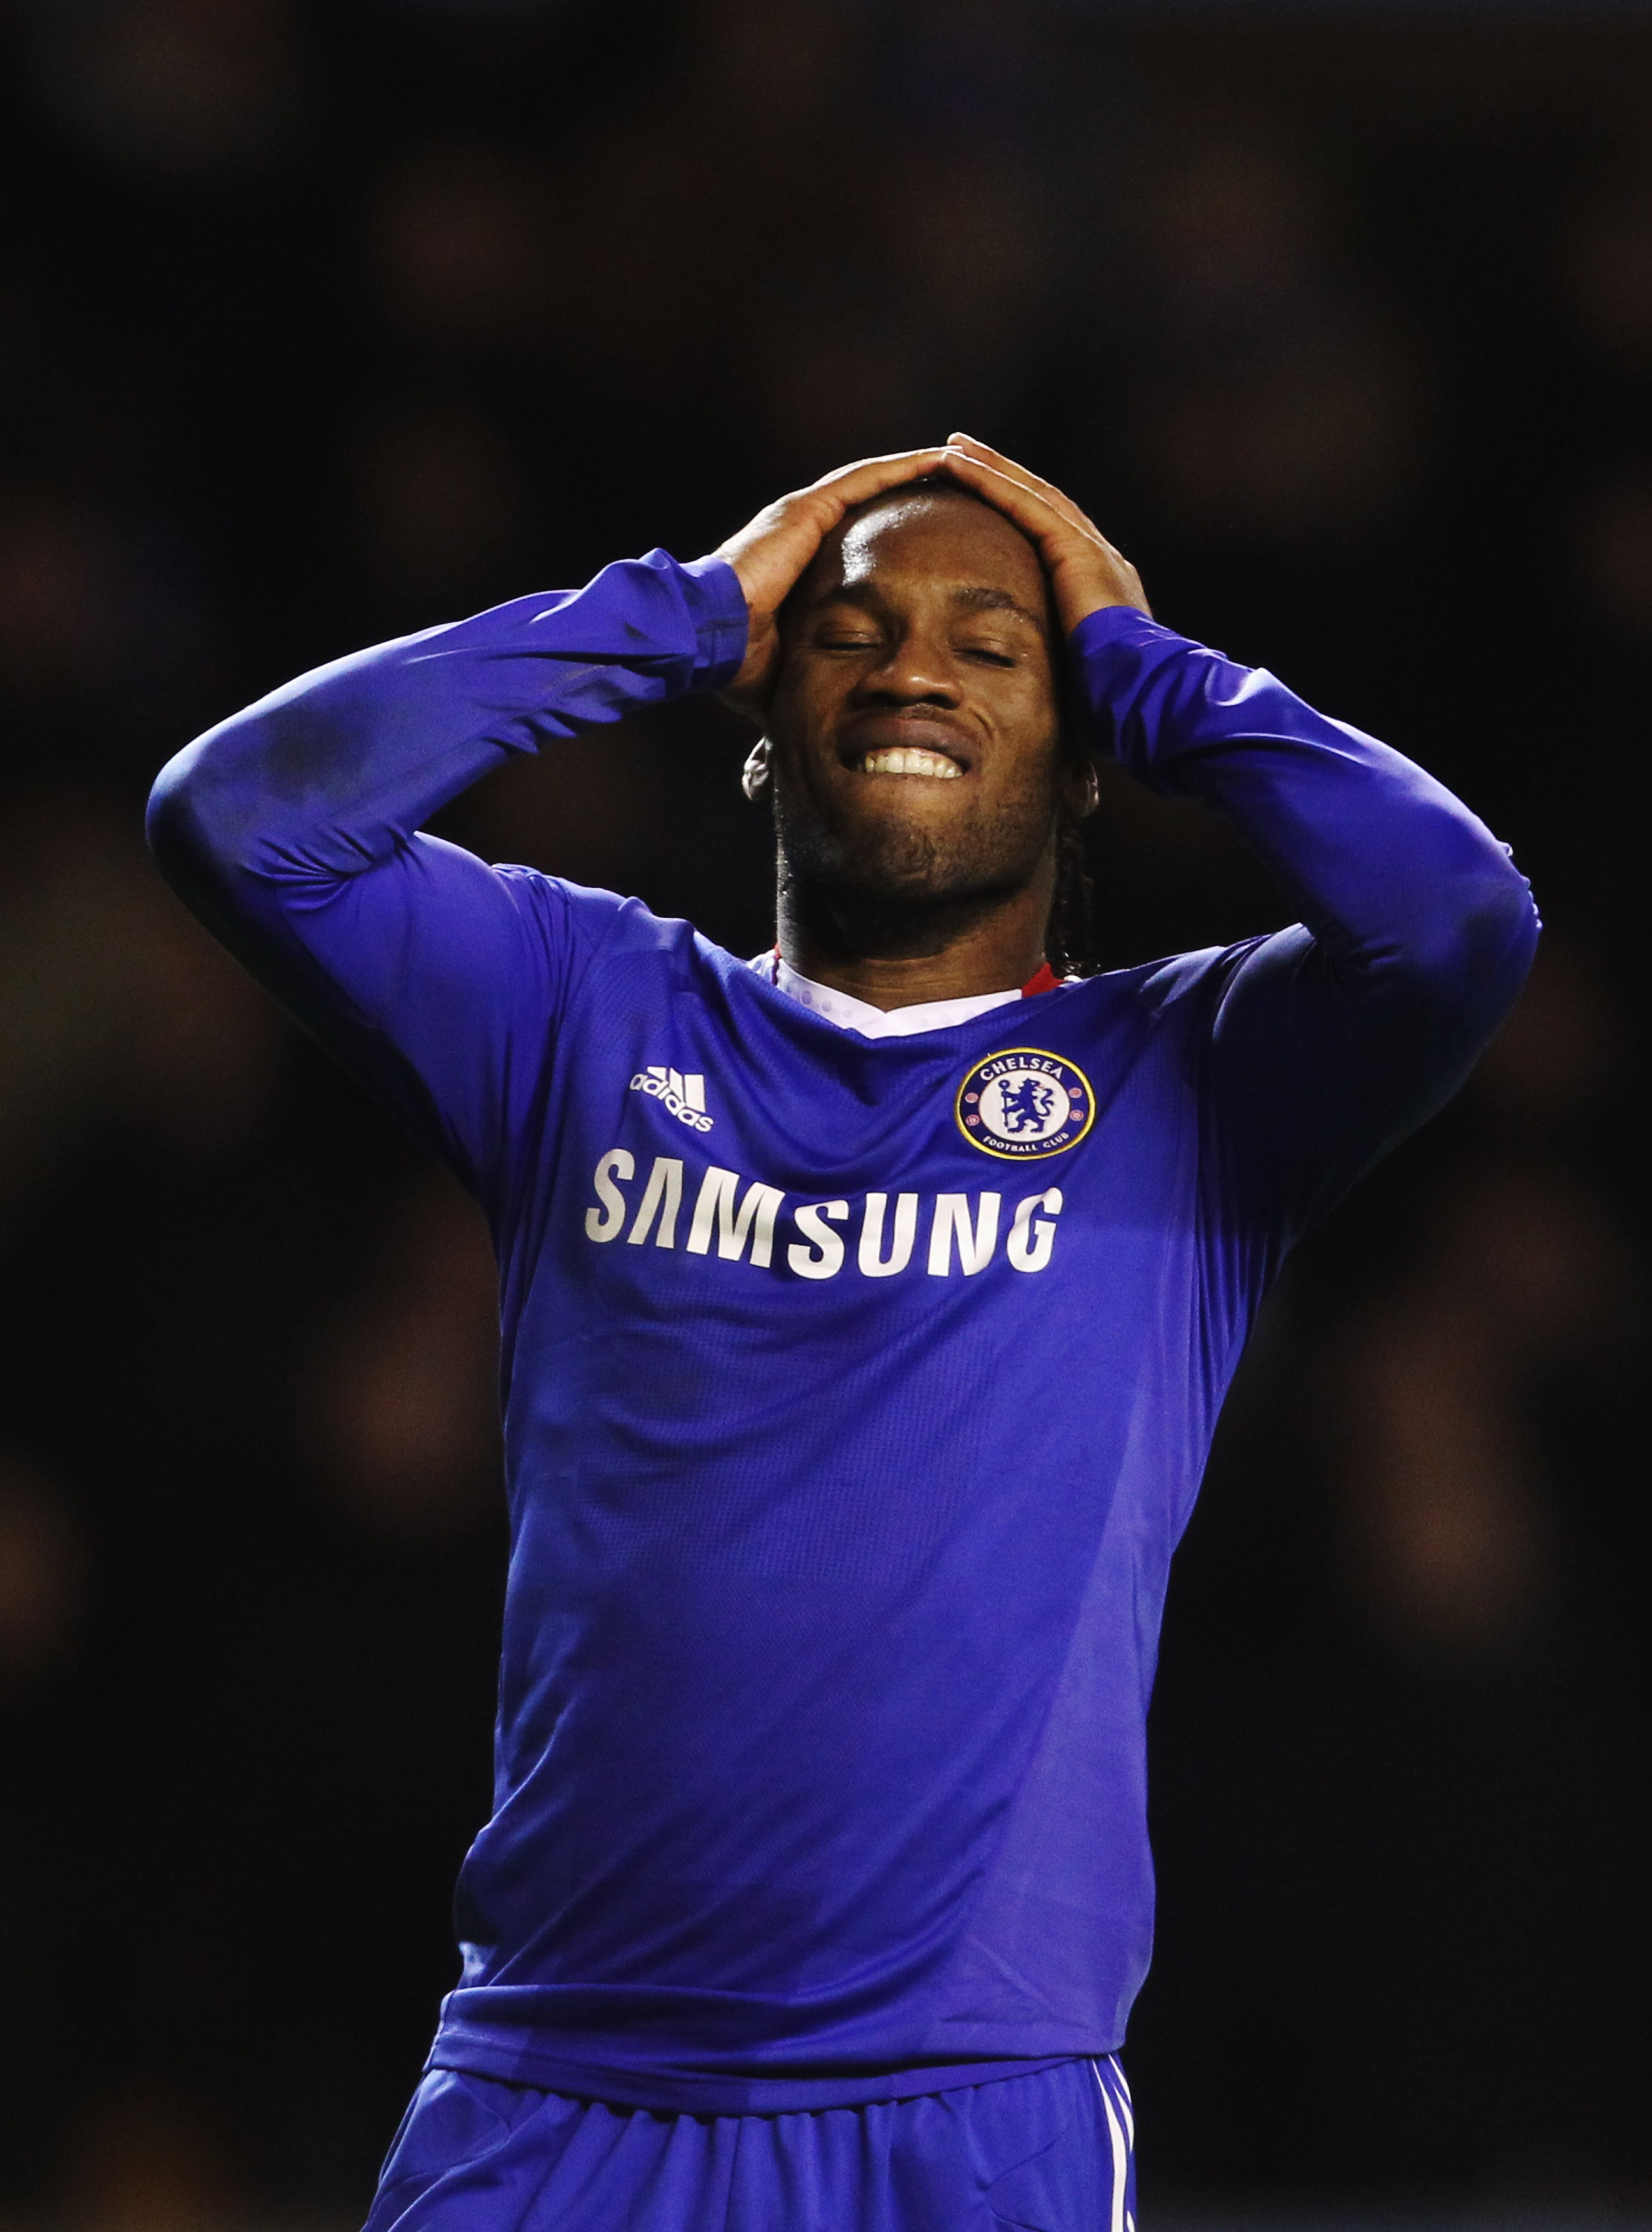 WOLVERHAMPTON, UNITED KINGDOM - JANUARY 05:  Didier Drogba of Chelsea reacts to a missed chance during the Barclays Premier League match between Wolverhampton Wanderers and Chelsea at Molineux on January 5, 2011 in Wolverhampton, England.  (Photo by Scott